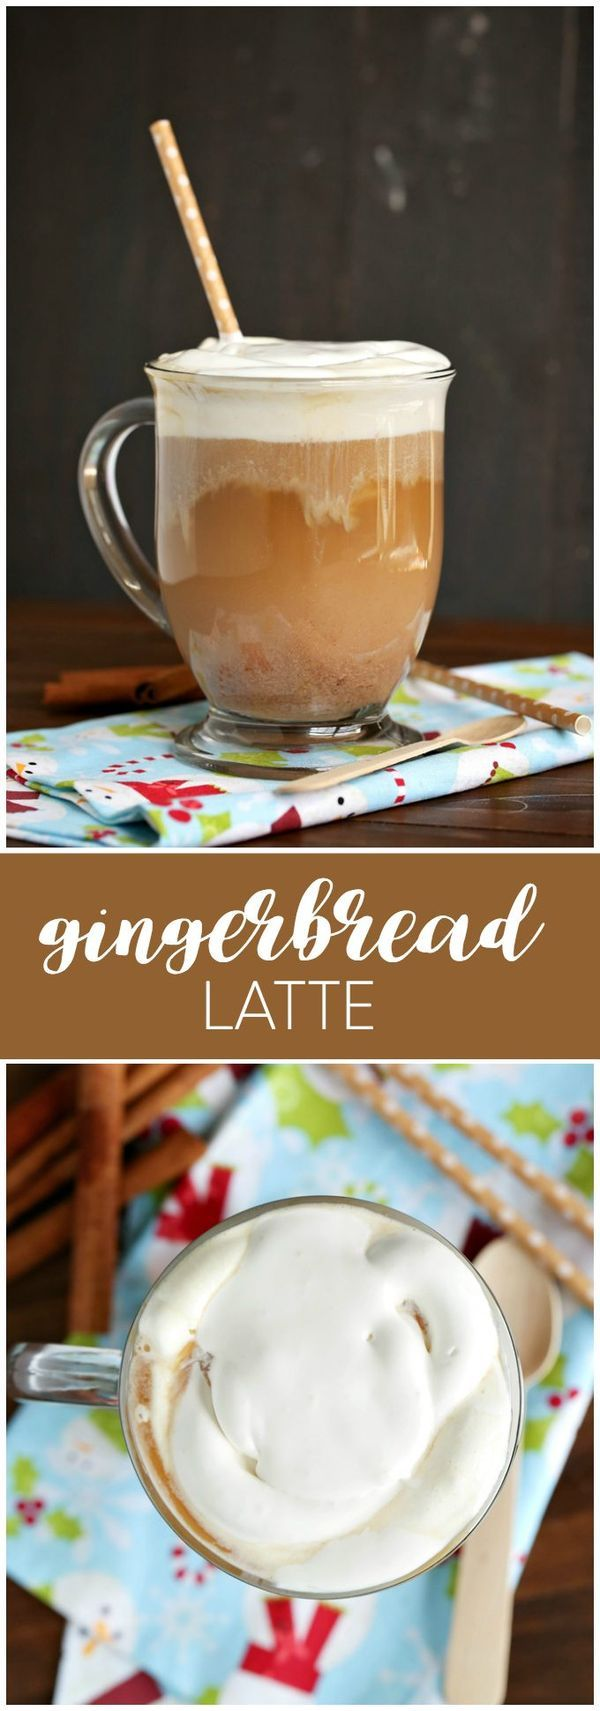 Gingerbread Latte - skip a trip to the coffee shop and make your own decadence in a mug right in your slow cooker - perfect for a warming drink this autumn.